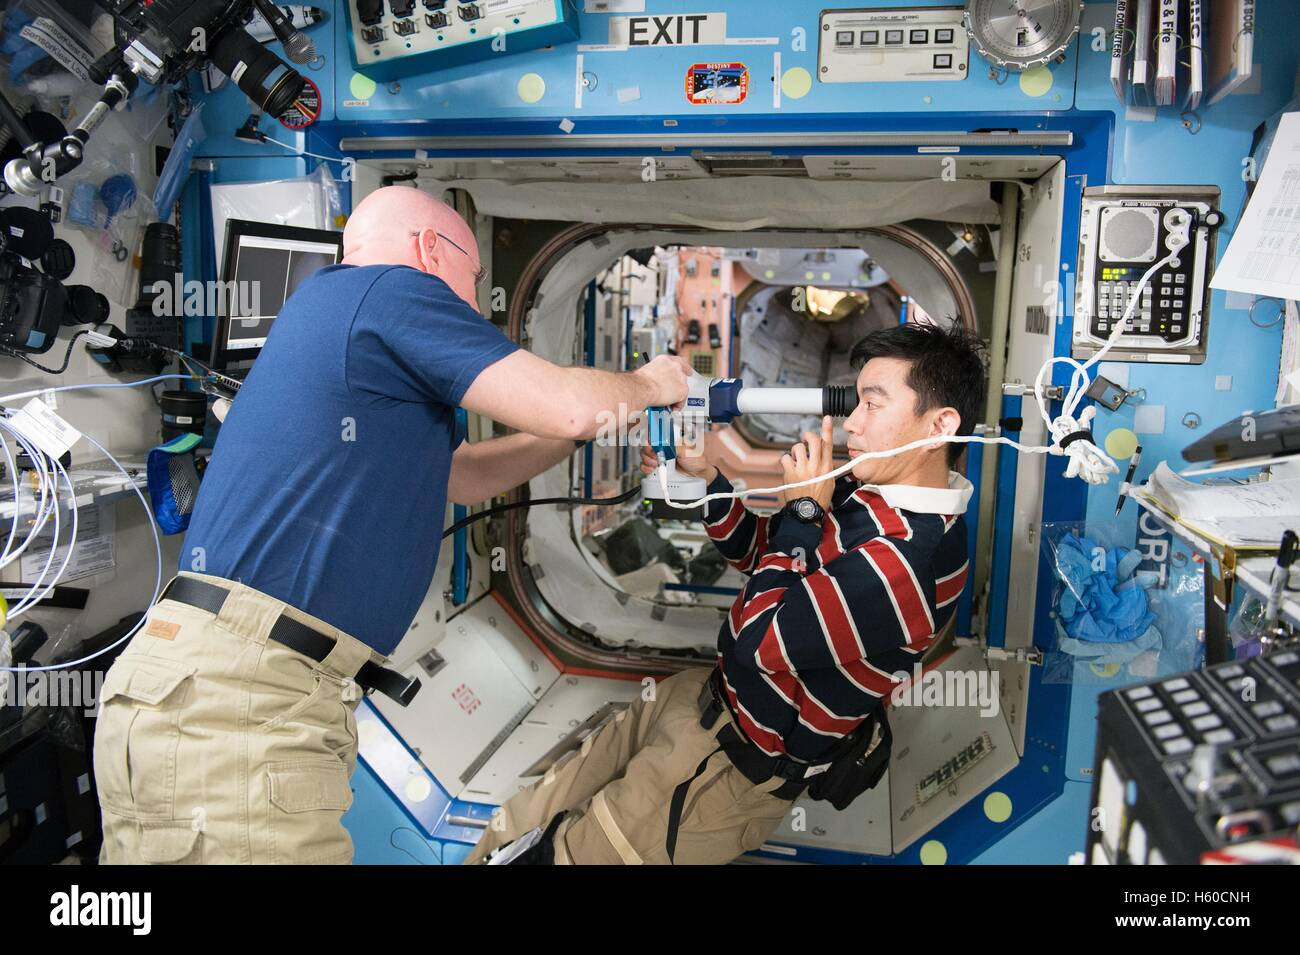 NASA International Space Station Expedition 44 mission astronaut Scott Kelly assists Japanese astronaut Kimiya Yui - Stock Image